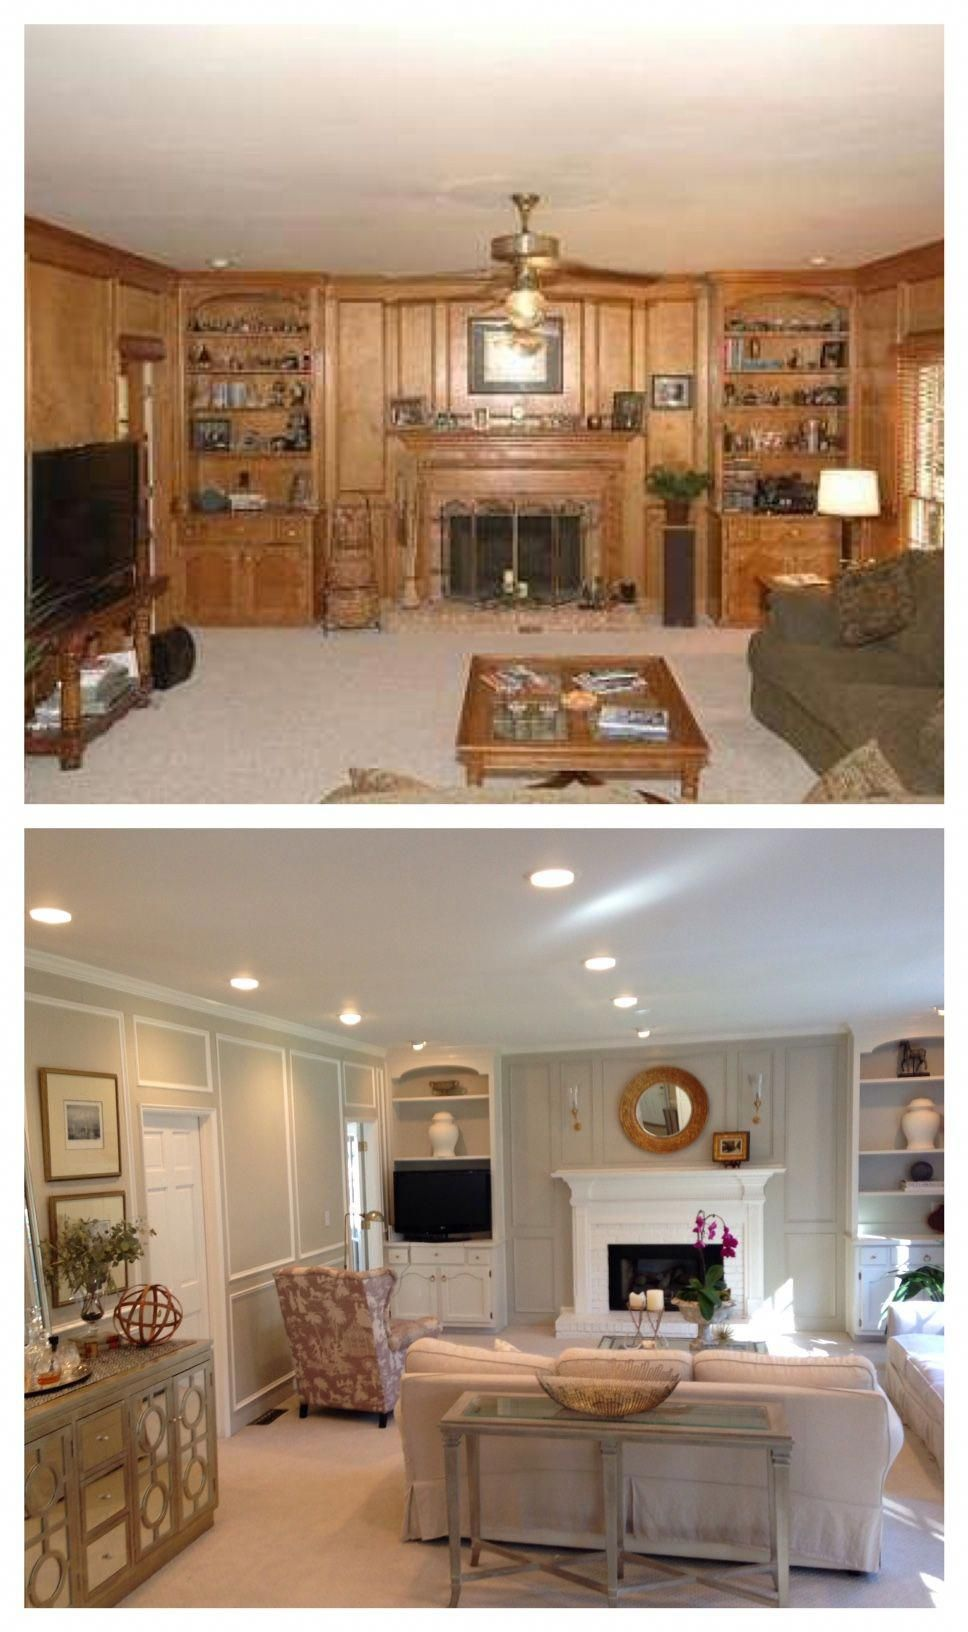 Living Room Wood Paneling Makeover: Living Room Before And After. Paneling Painted, Updated